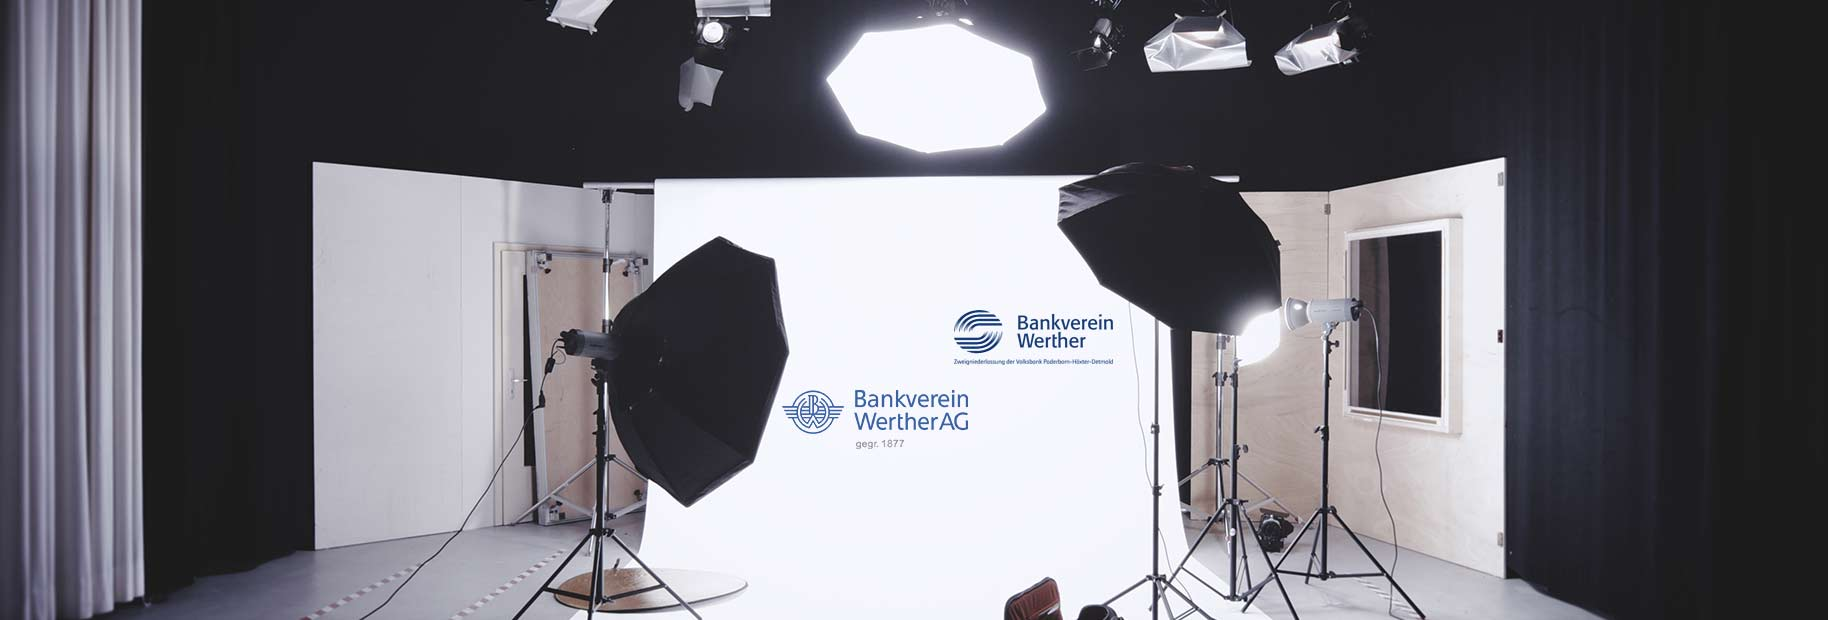 Case-Study-Bankverein-Werther